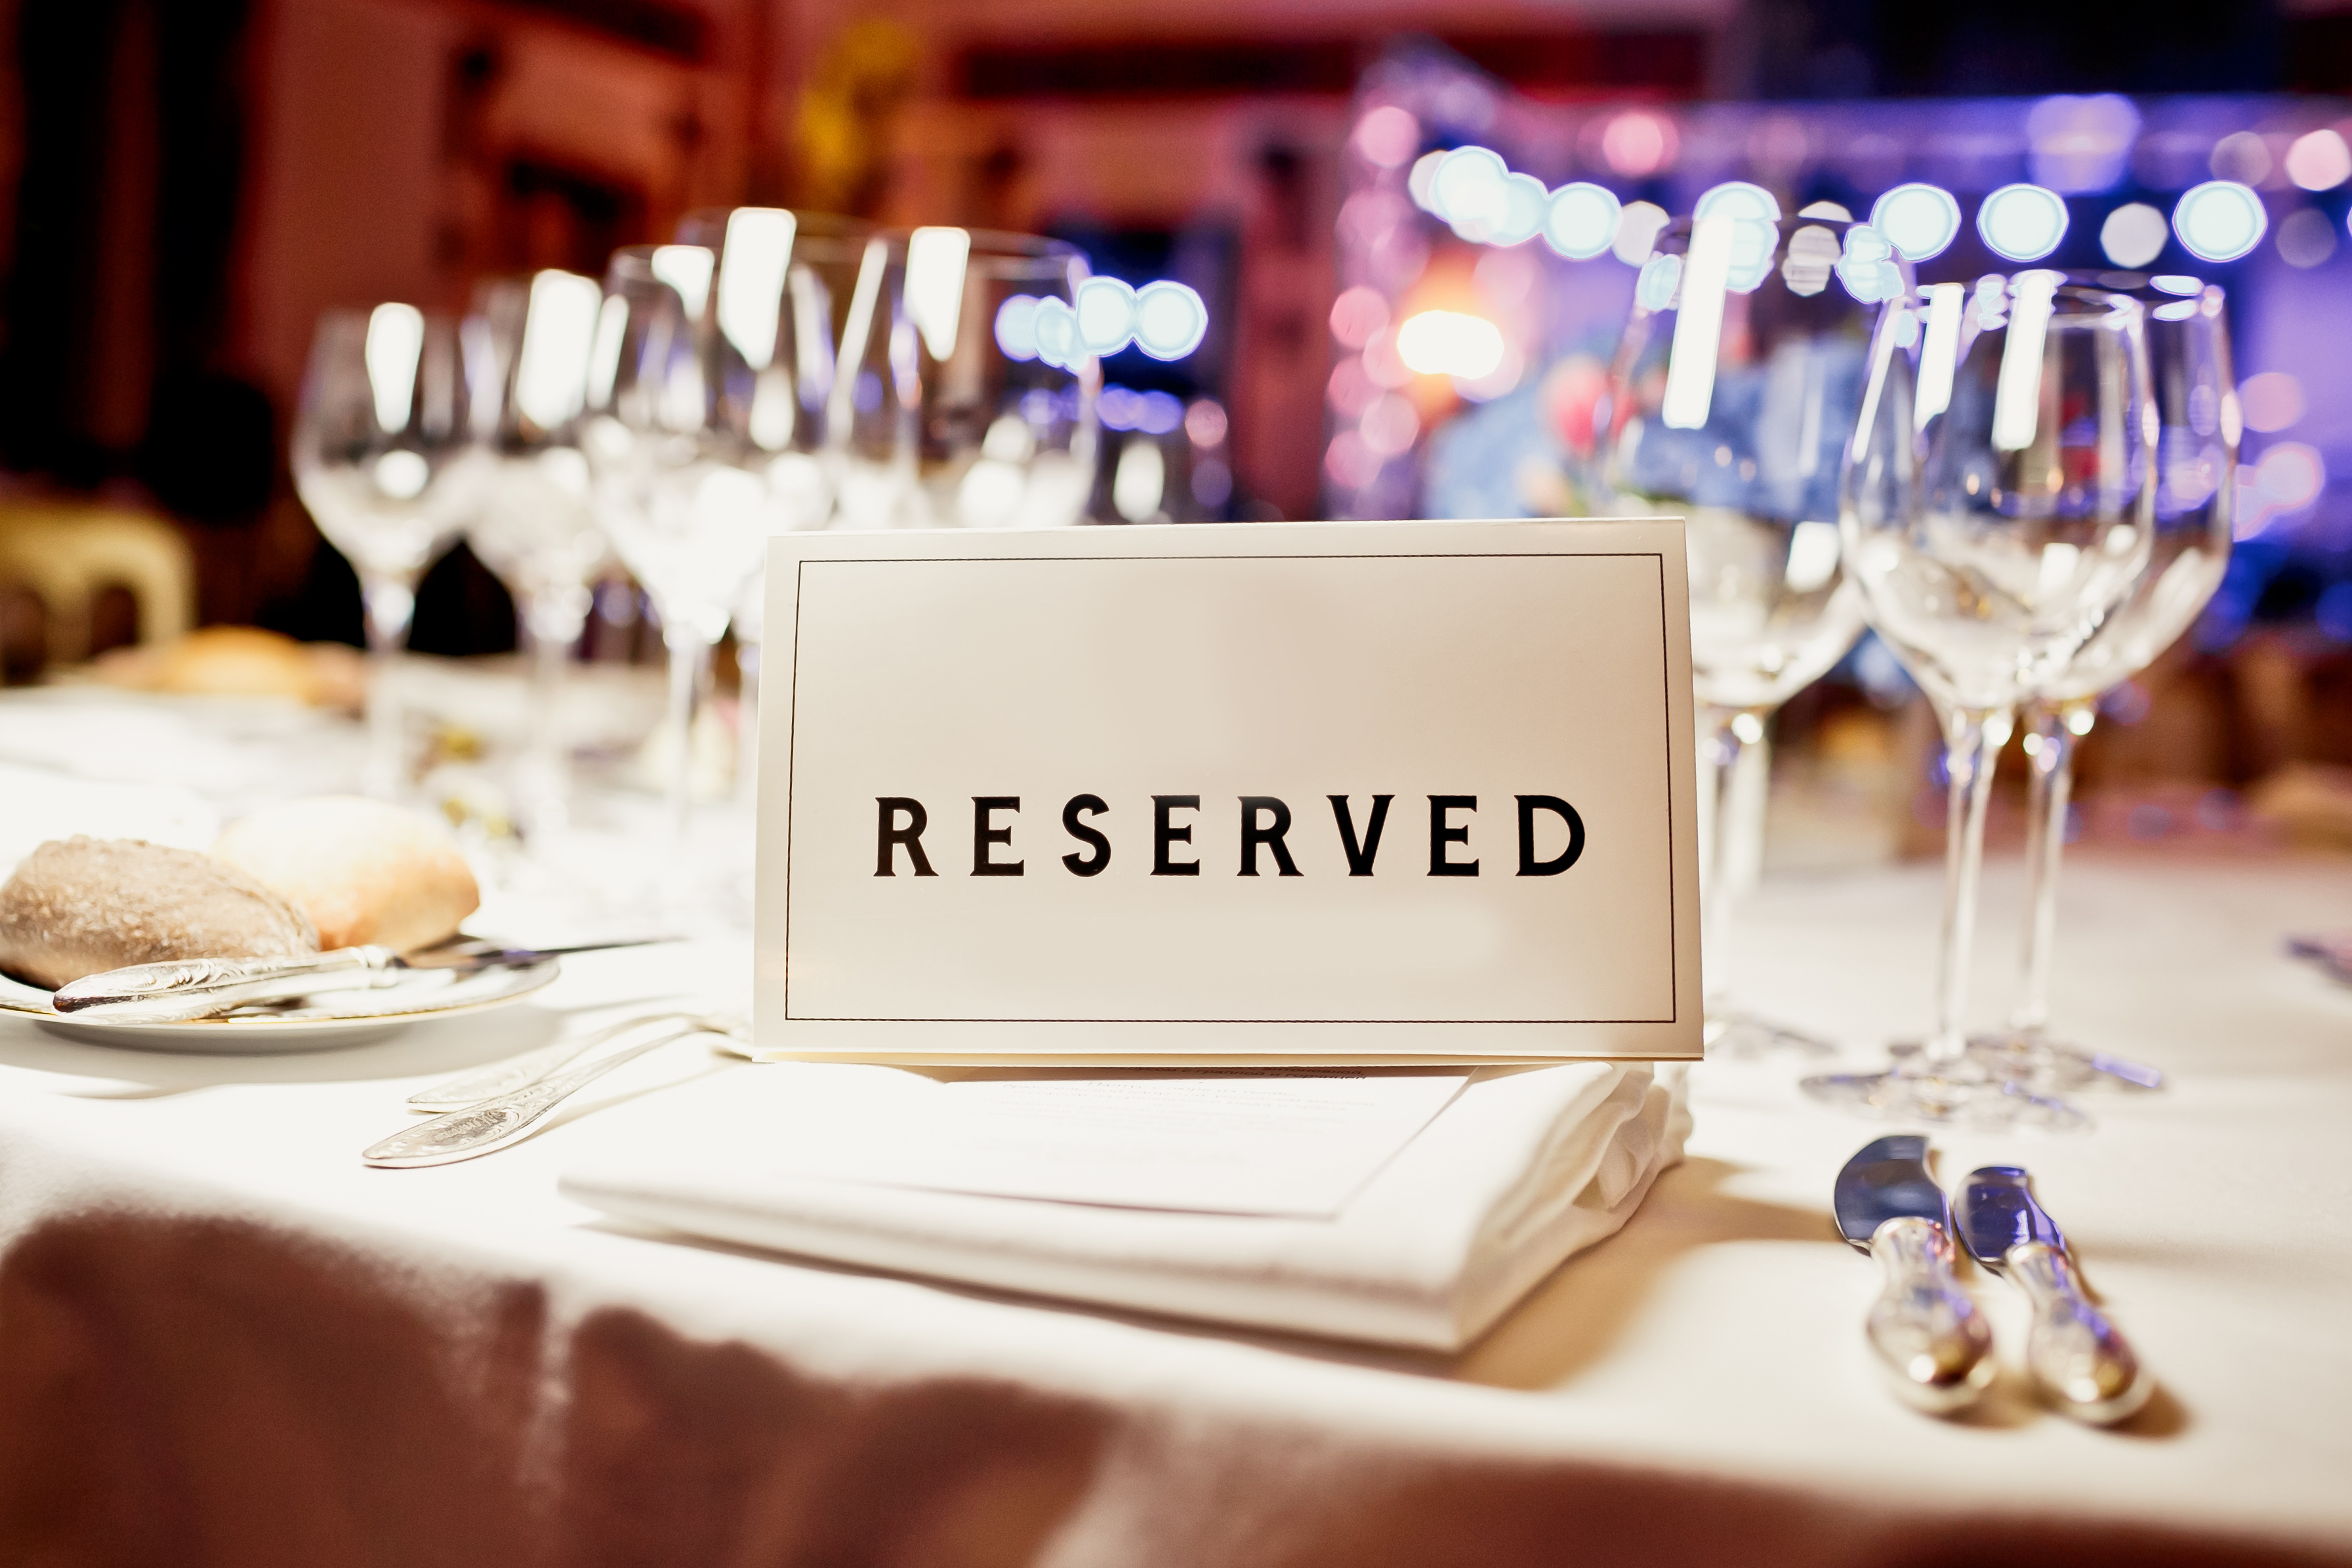 Reserve A Room At A Restaurant